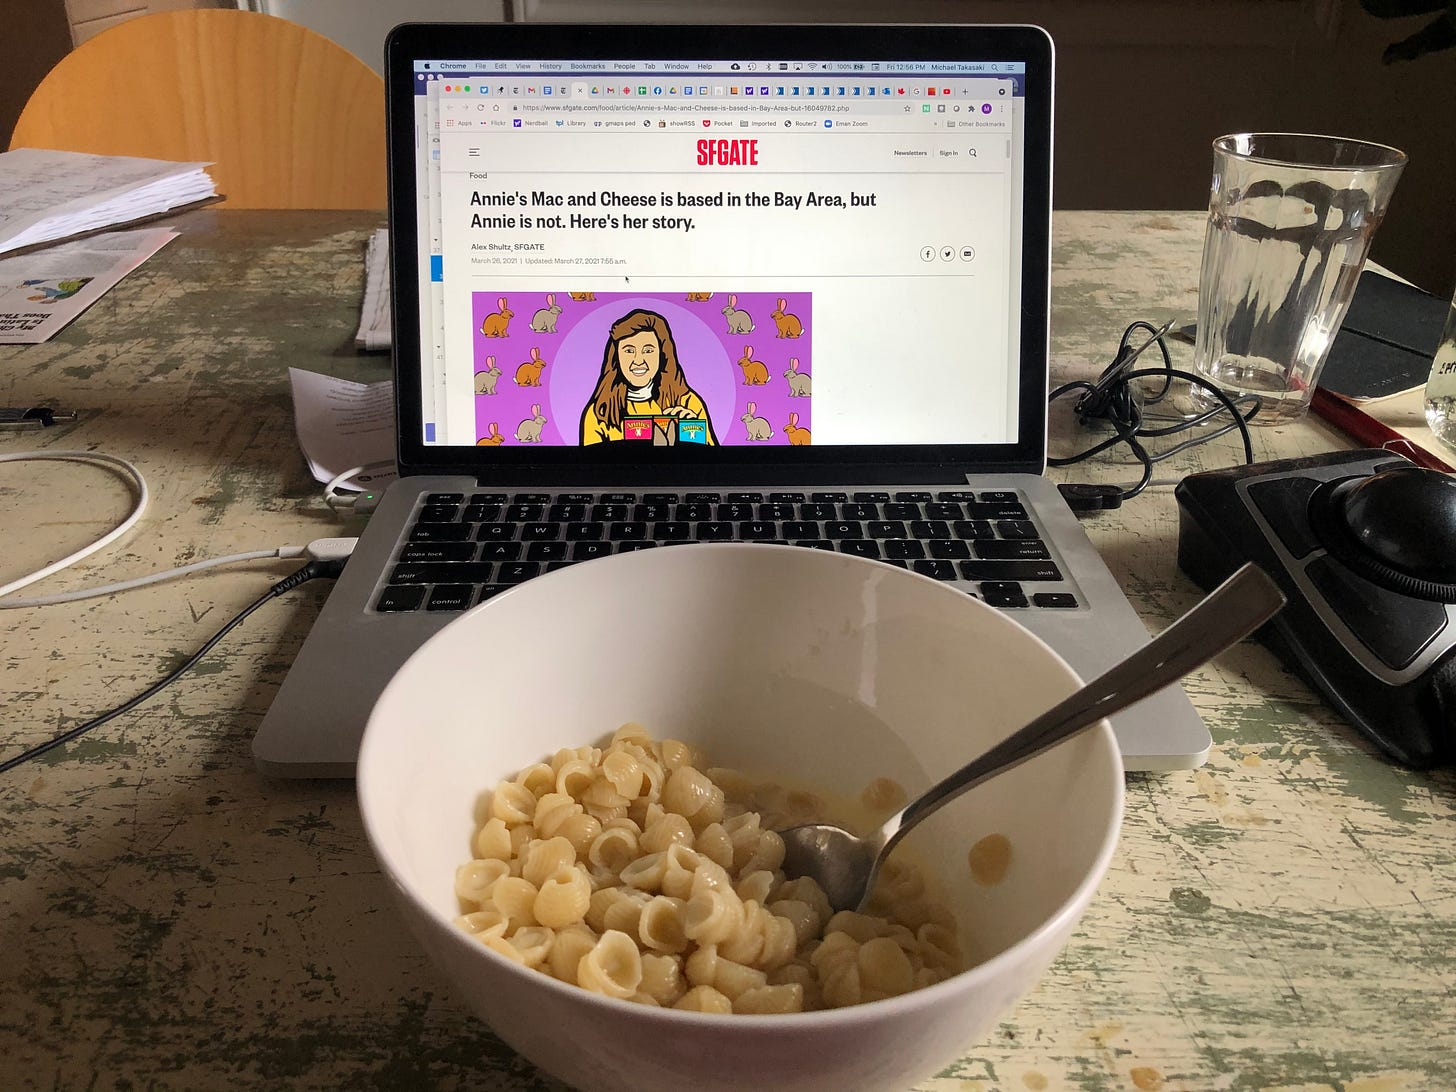 A bowl of Annie's shells and cheese in front of a laptop with the Annie's article open.